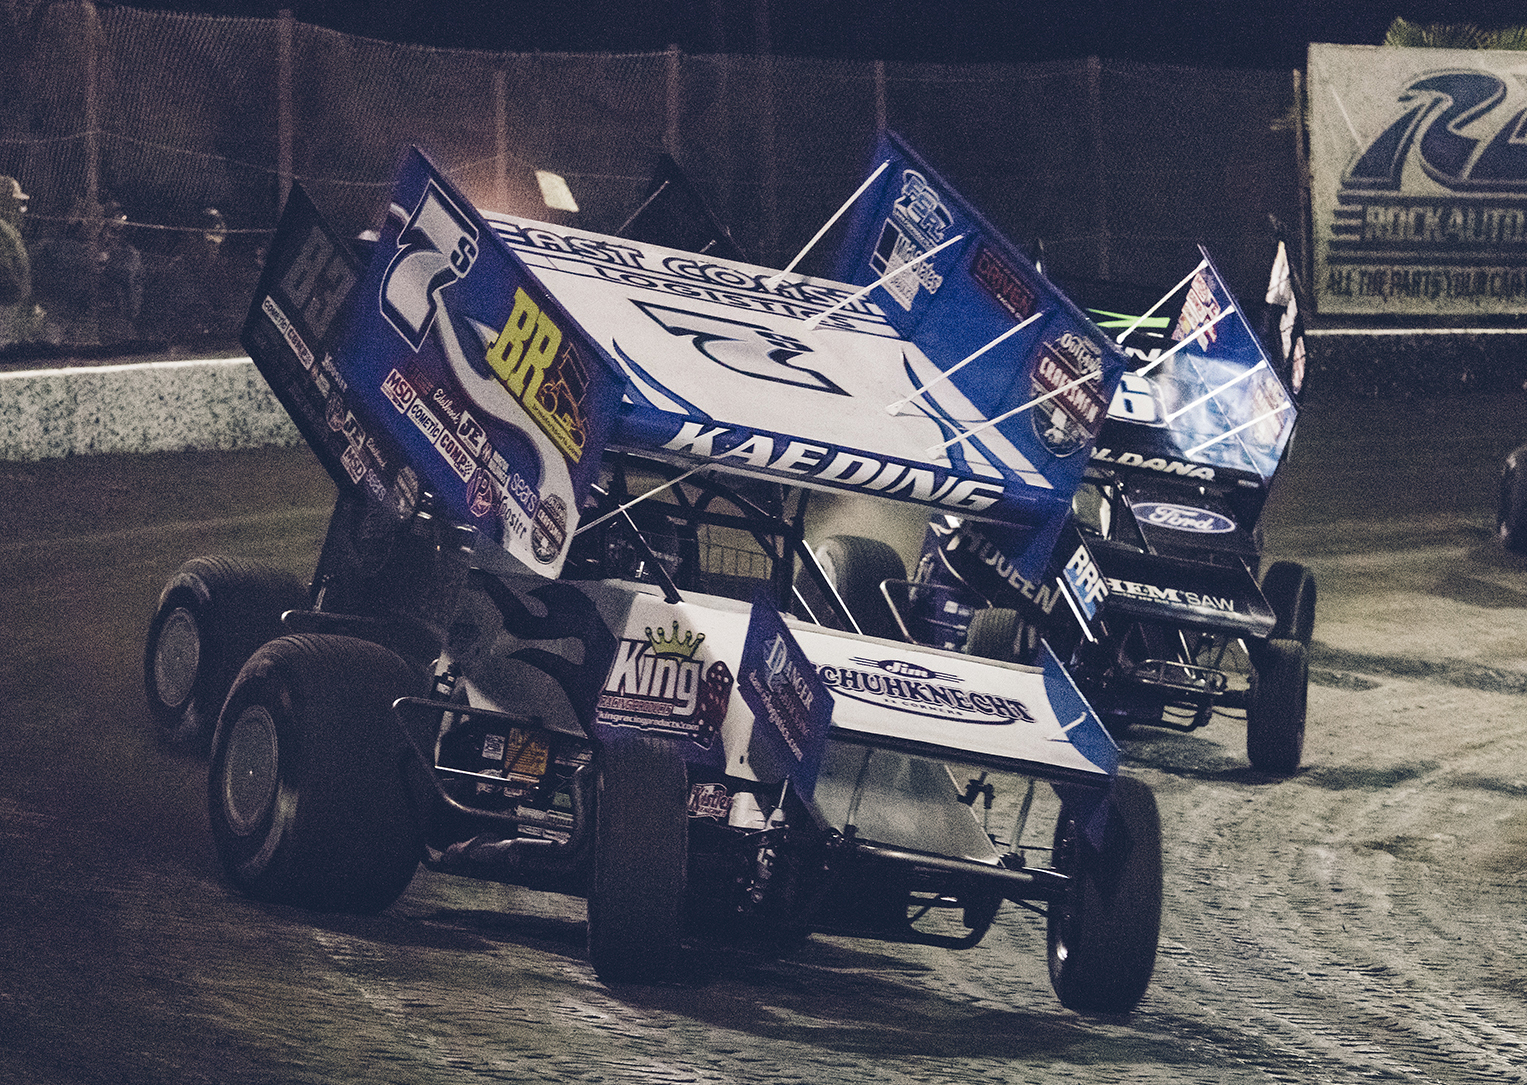 Driving for Sides Motorsports, Tim leads a pack of Outlaws during a heat race at Bakersfield, 2018.